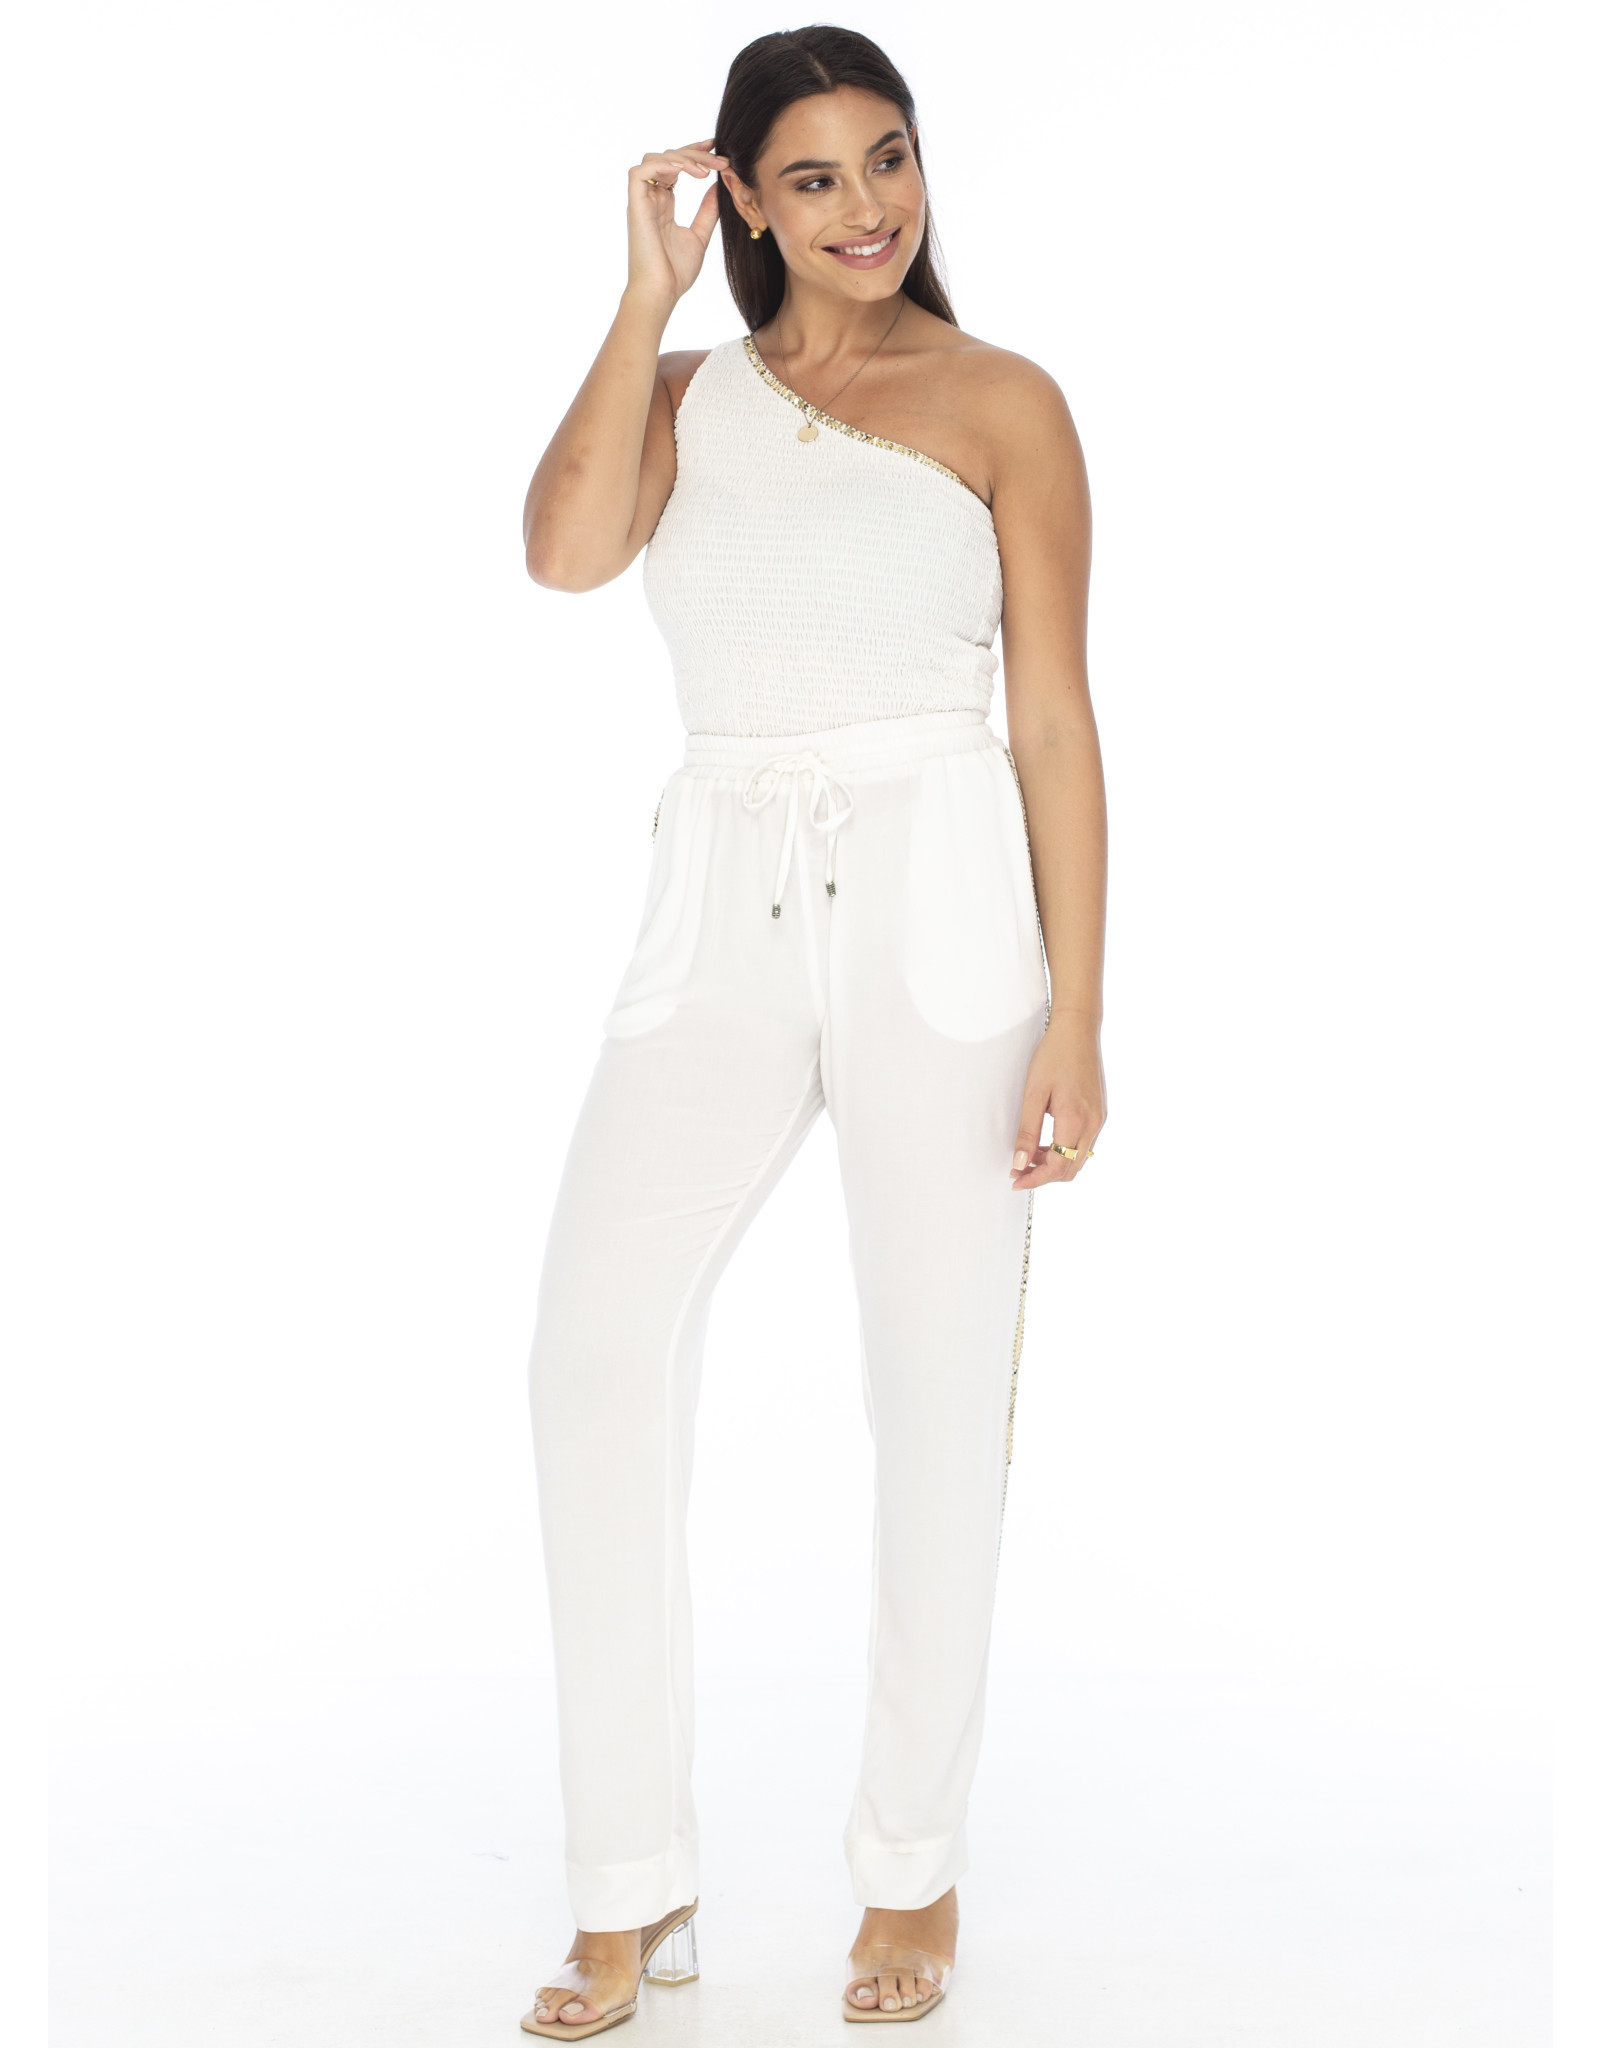 Skemo White Eve Crop Top